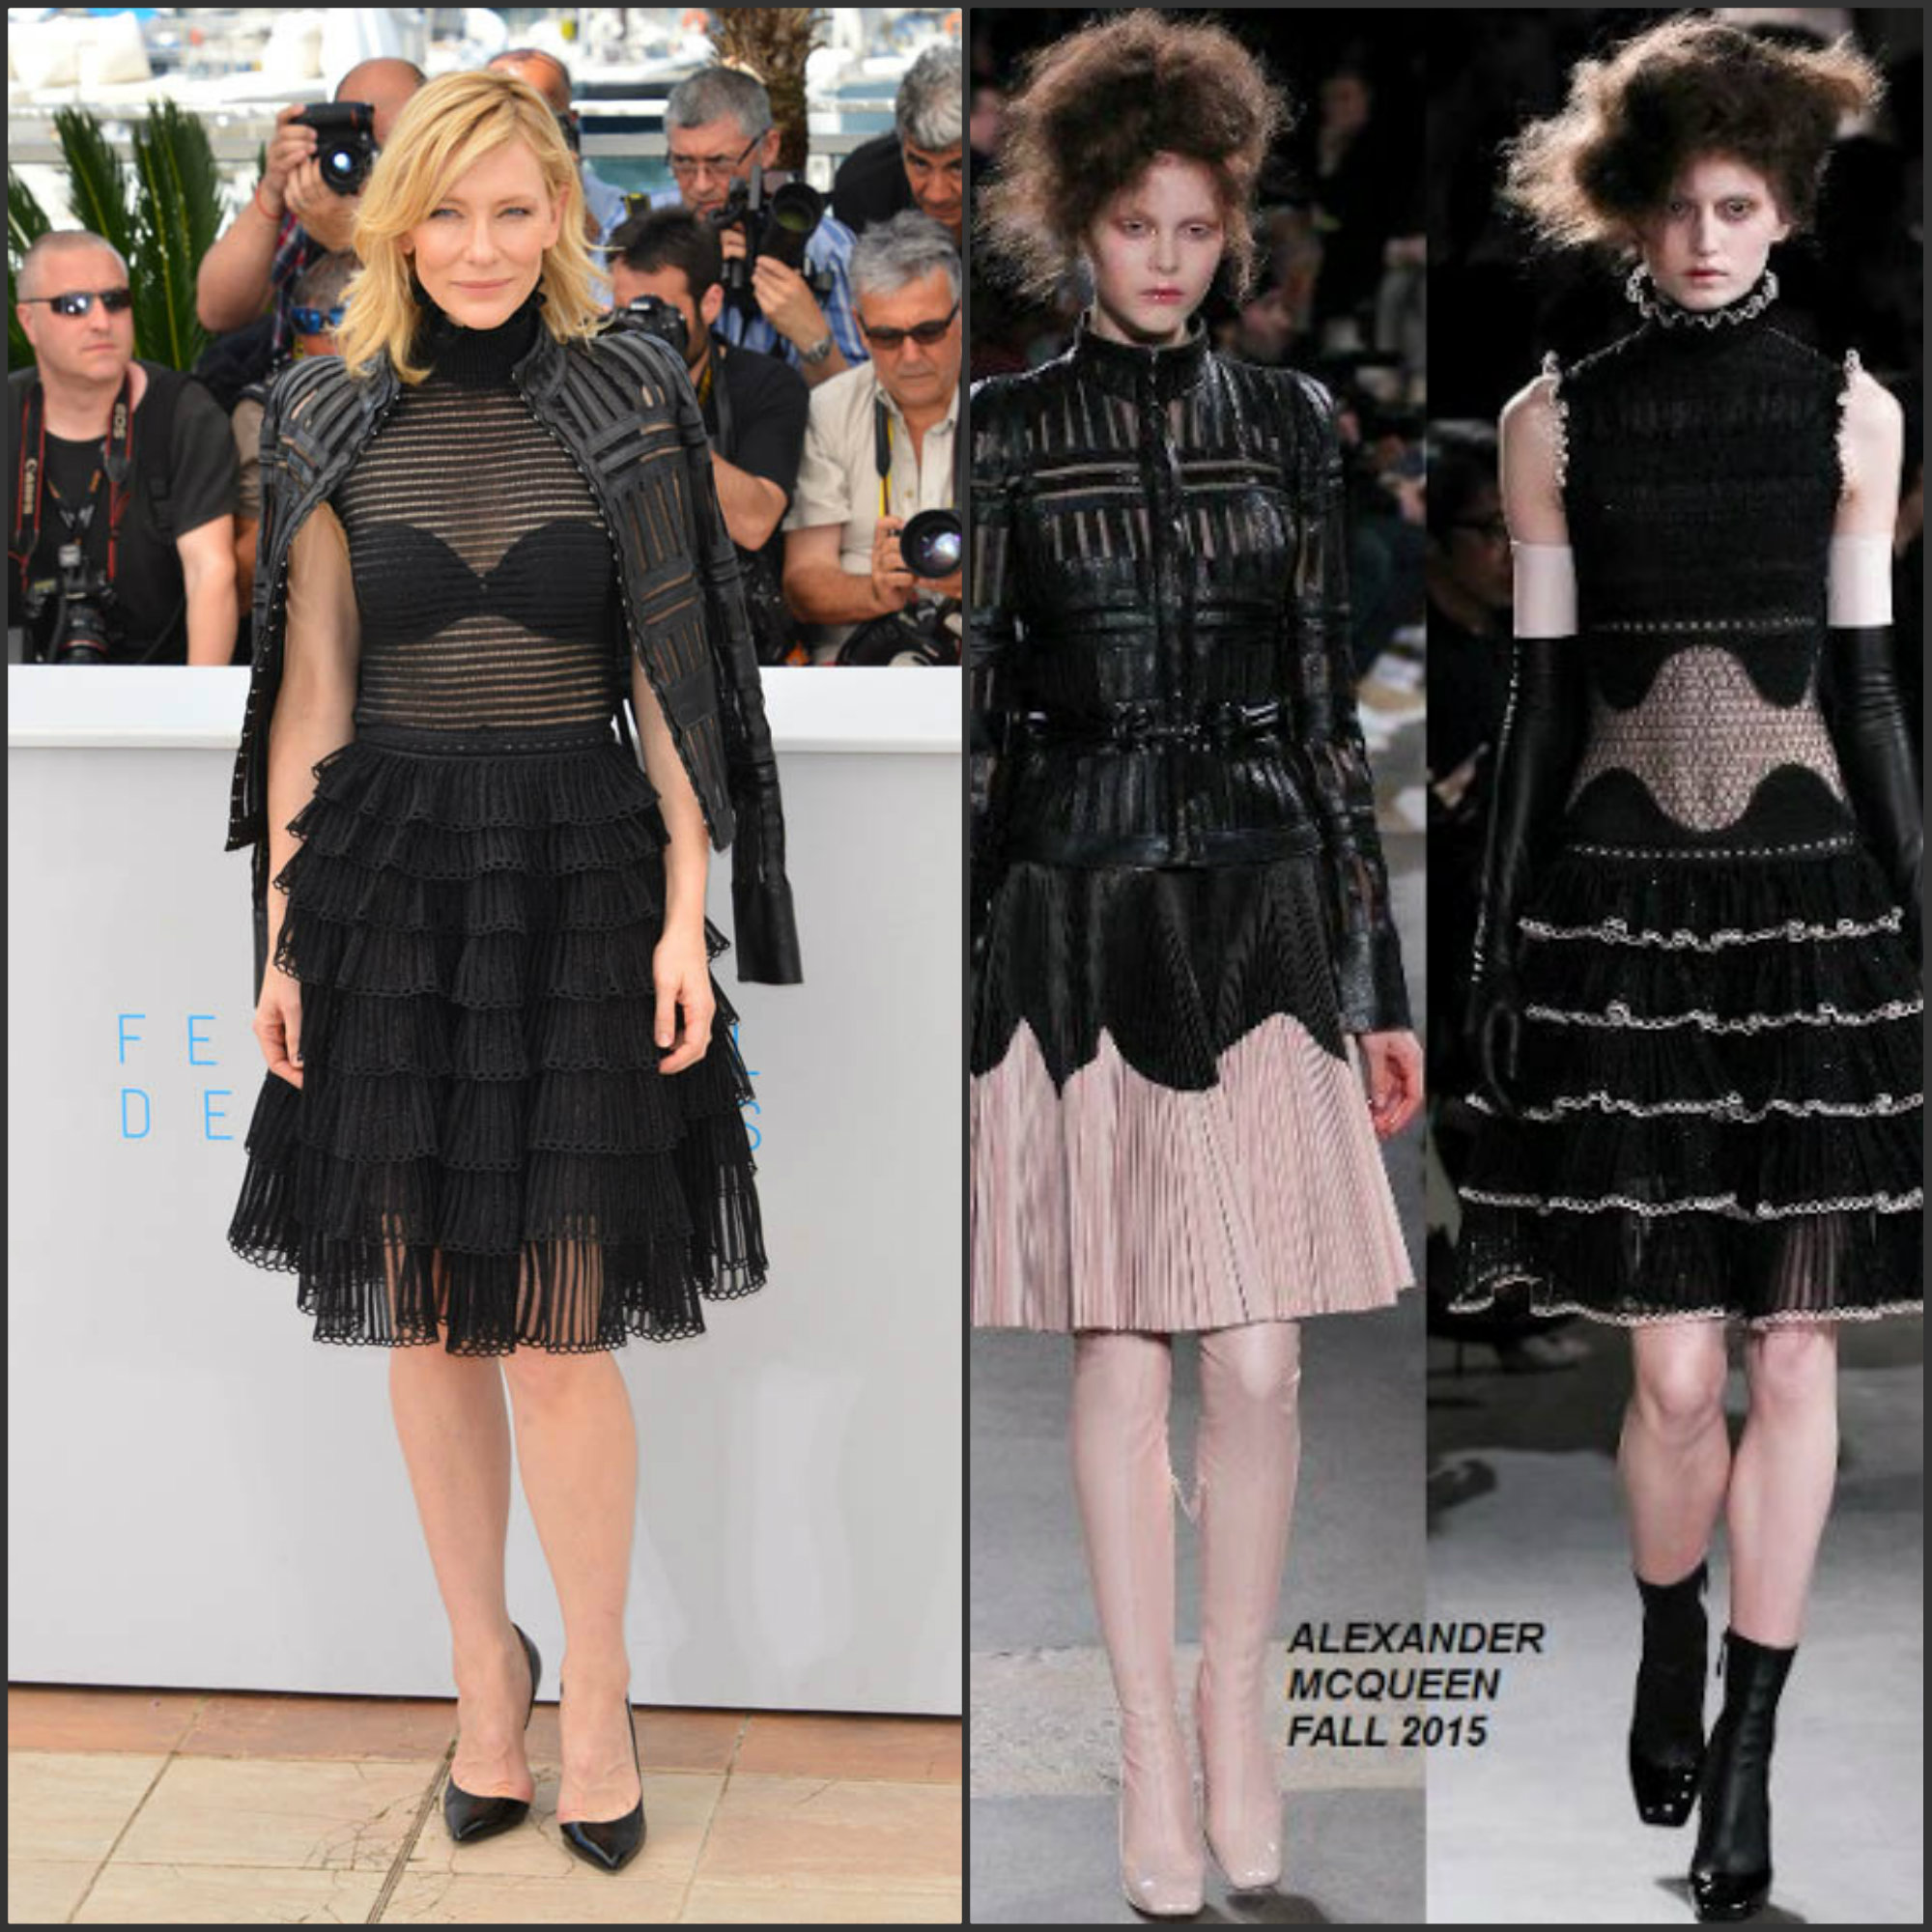 cate-blanchett-in-alexander-mcqueen-at-carol-cannes-film-festival-photocall